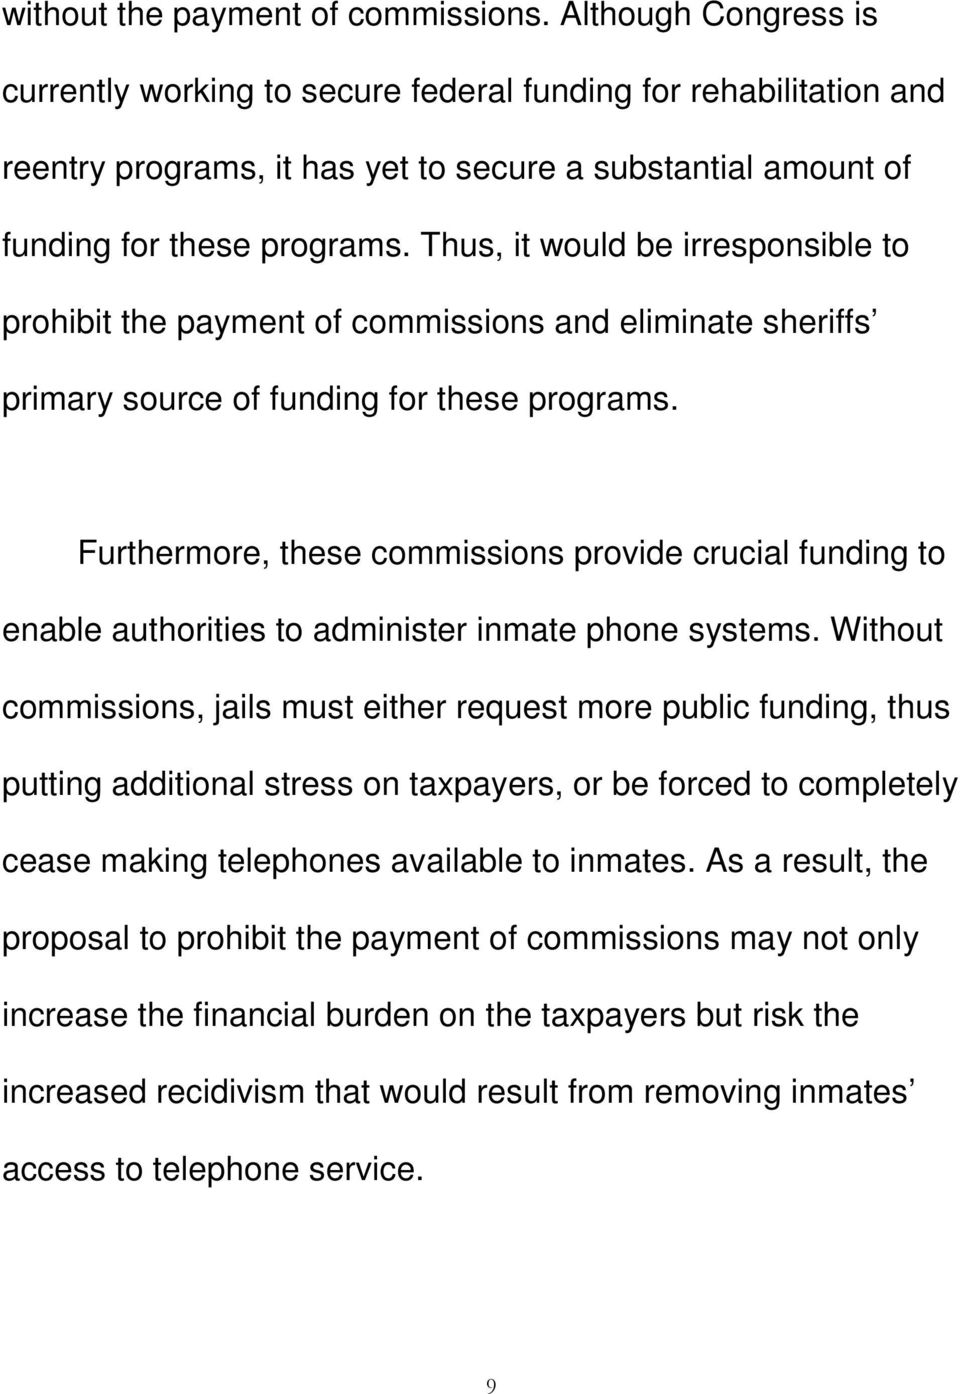 Thus, it would be irresponsible to prohibit the payment of commissions and eliminate sheriffs primary source of funding for these programs.